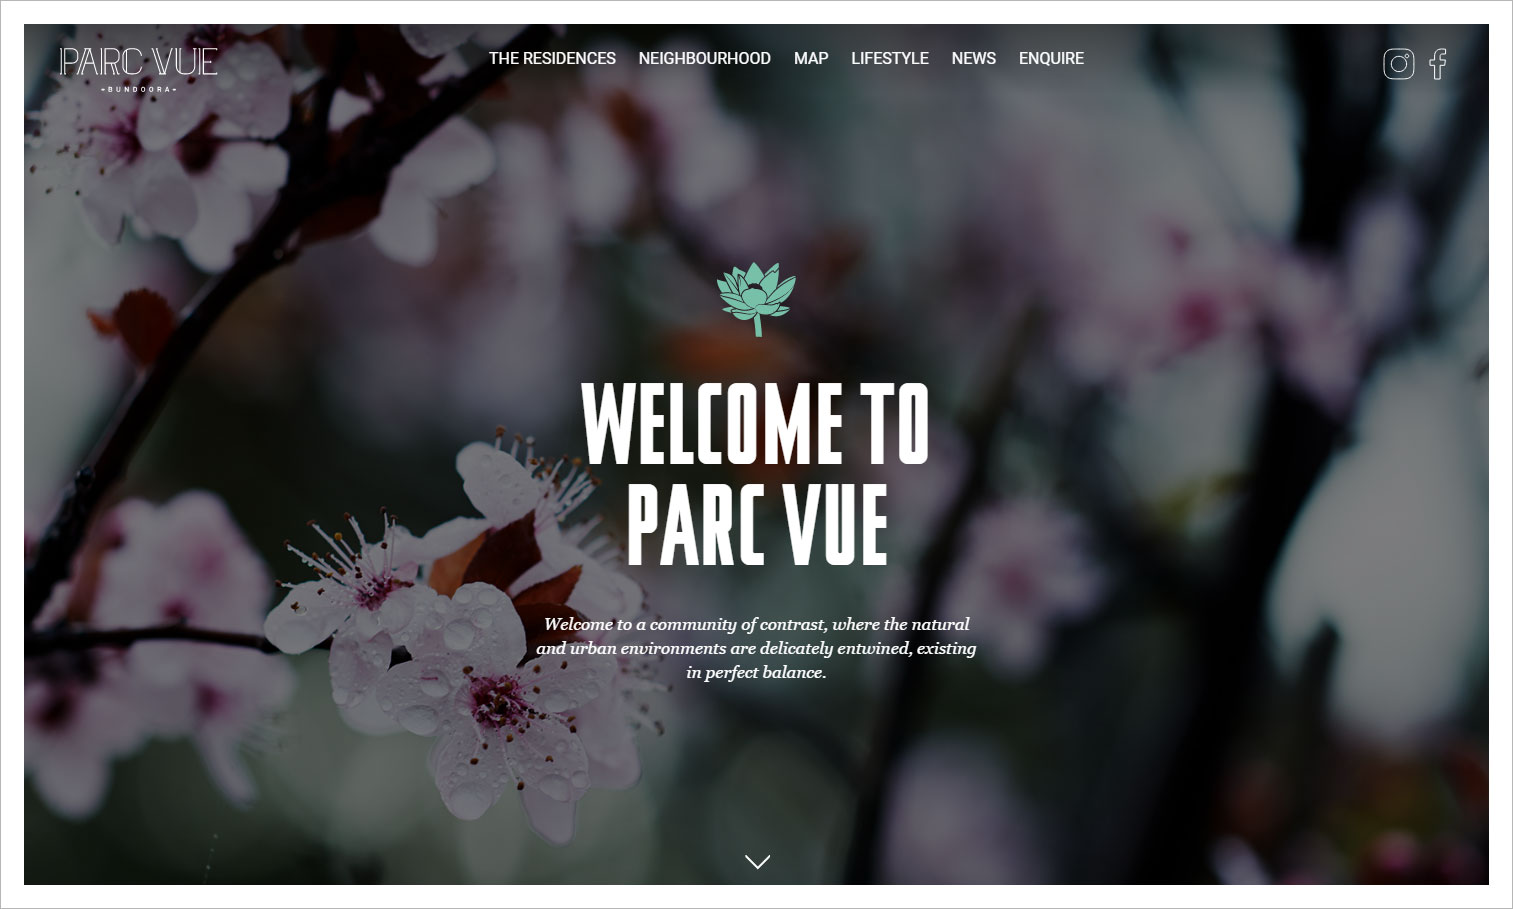 Design elements and typography work together in this website design for Parc Vue.